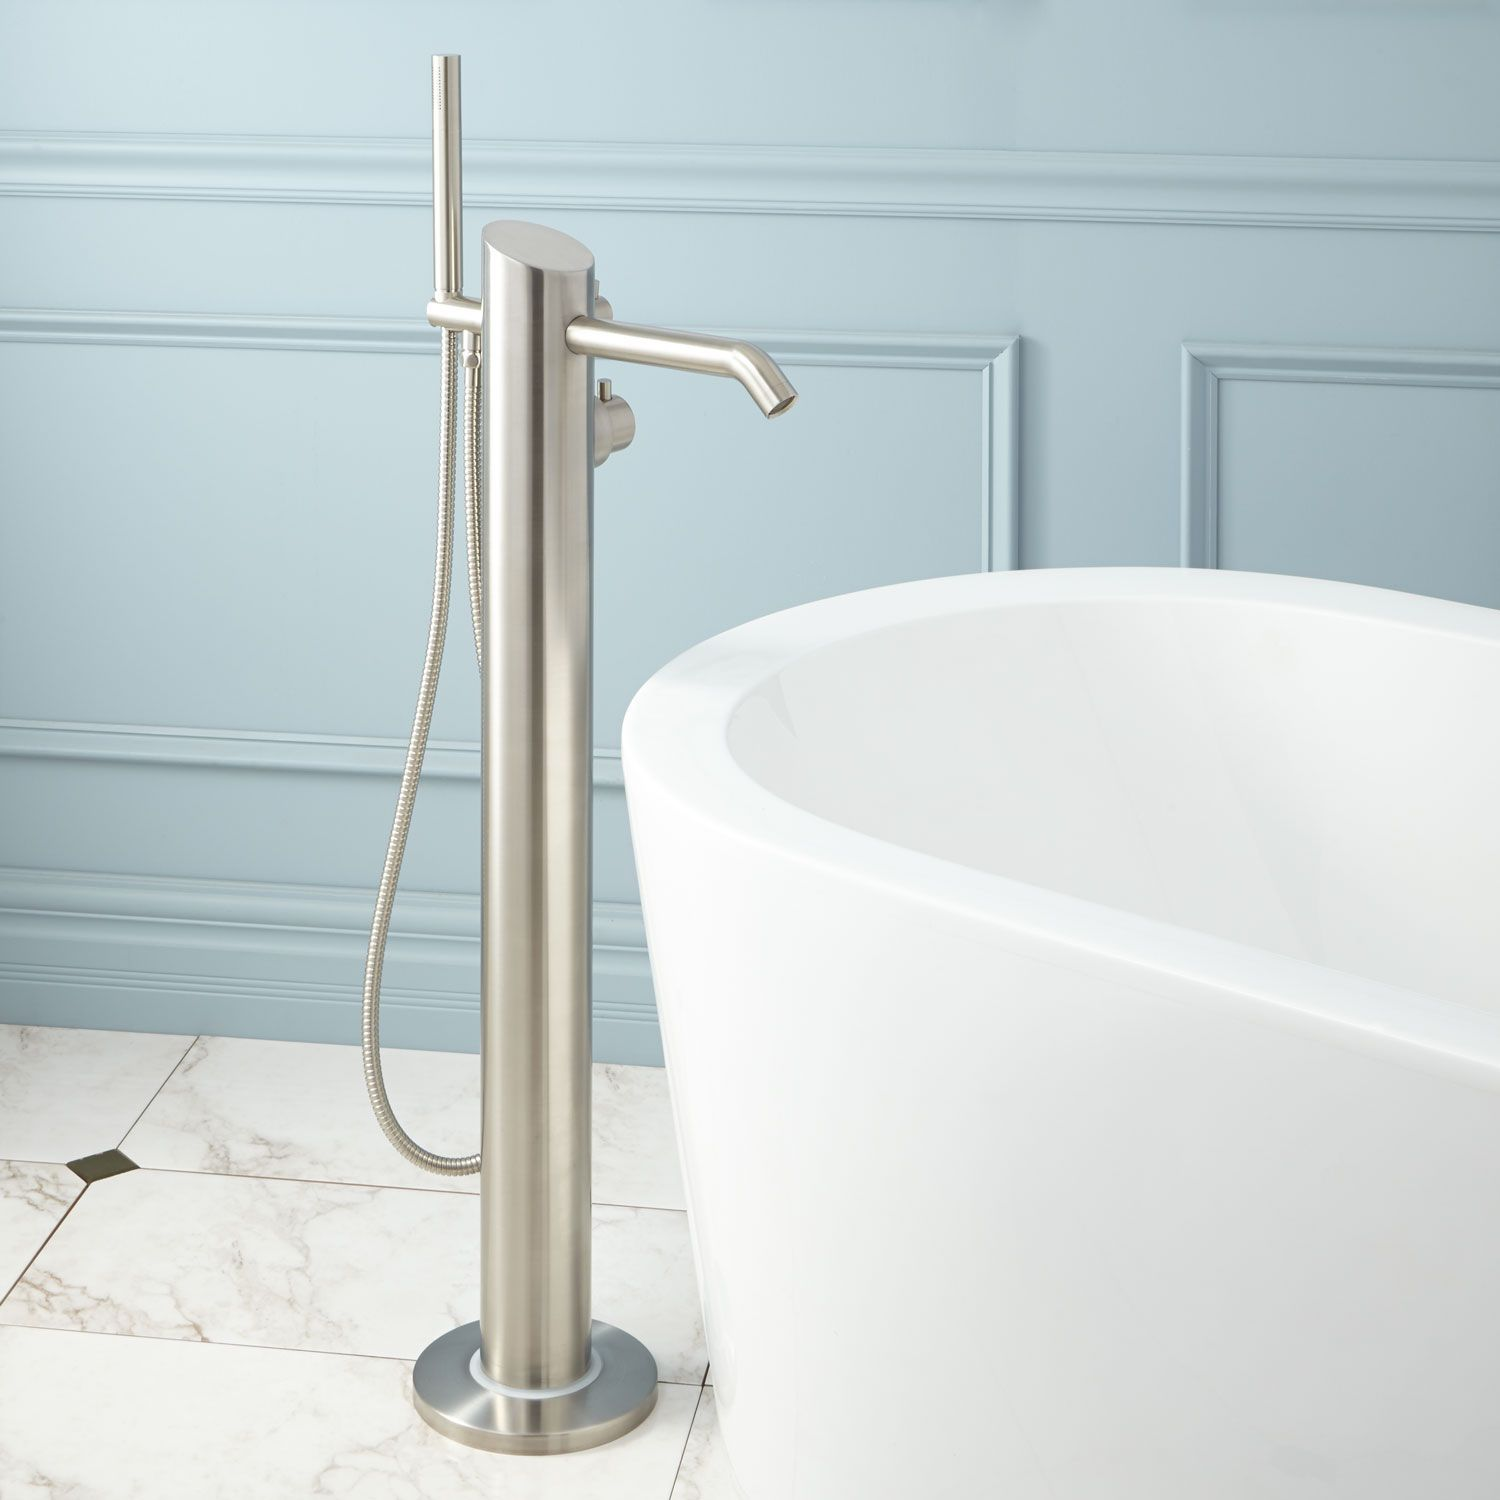 Samara Freestanding Thermostatic Tub Faucet Faucet and Products